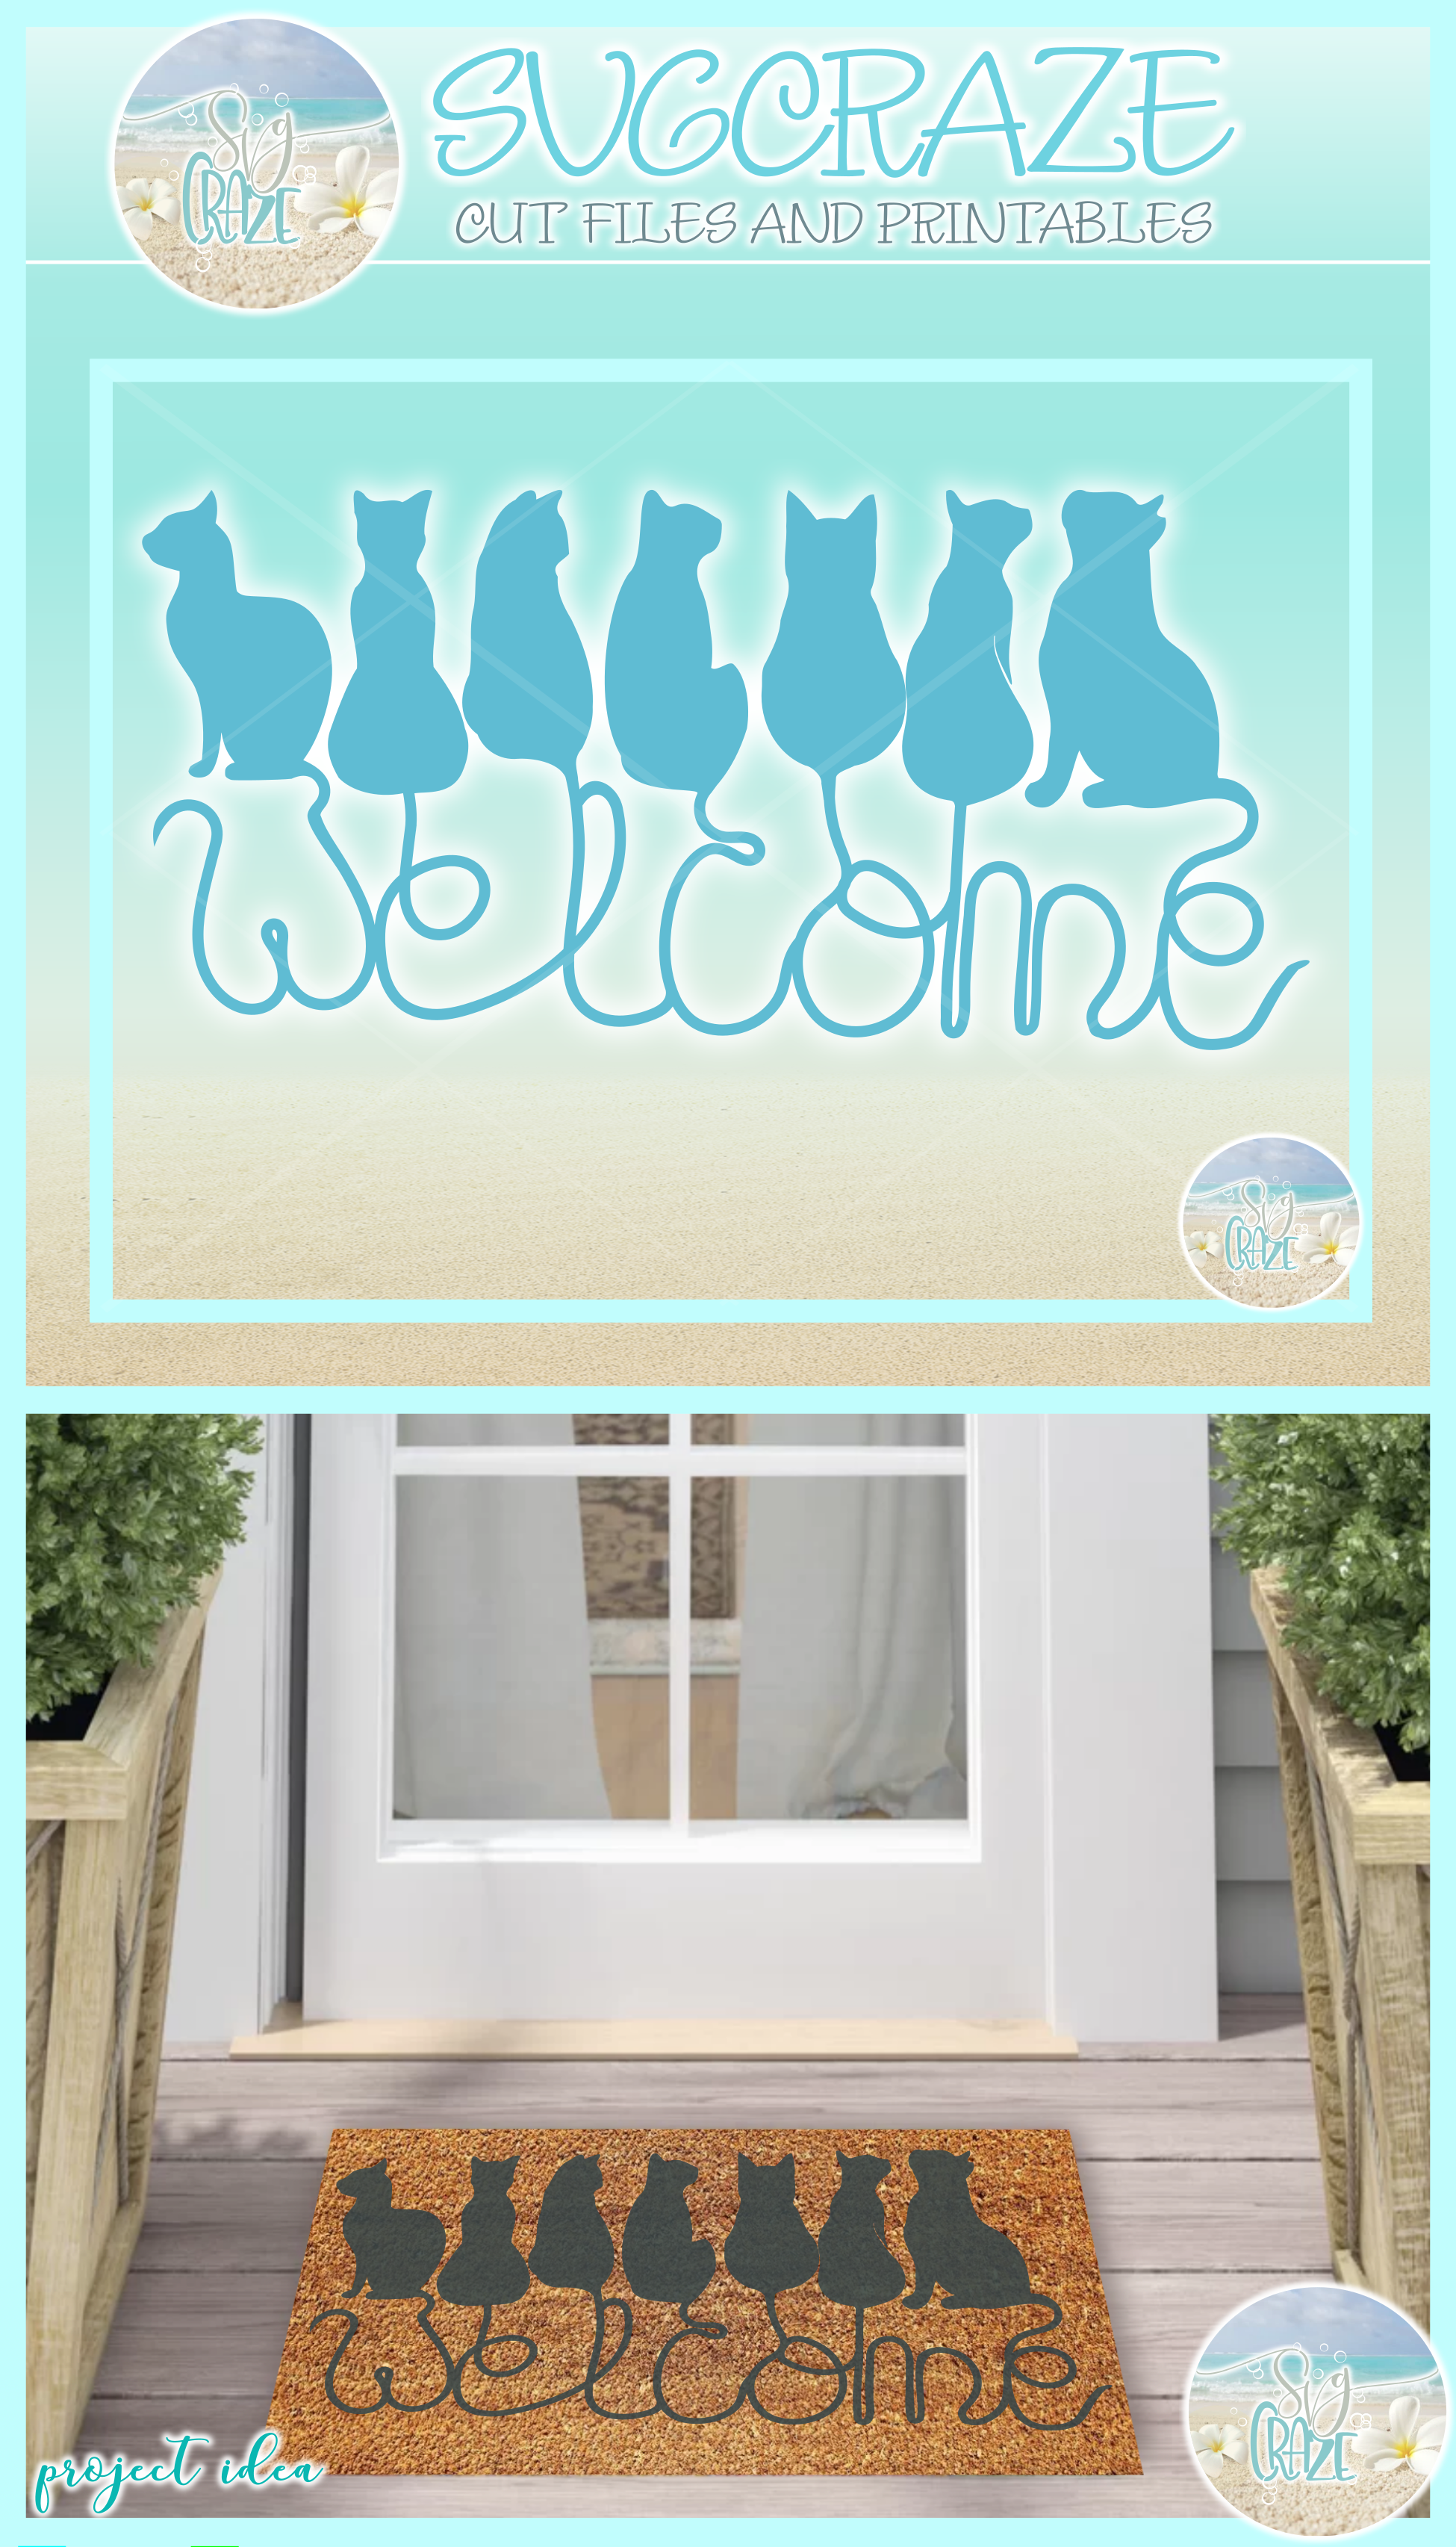 Cats Welcome Coir Door Mat Design Svg Dxf Eps Png Pdf Files example image 4